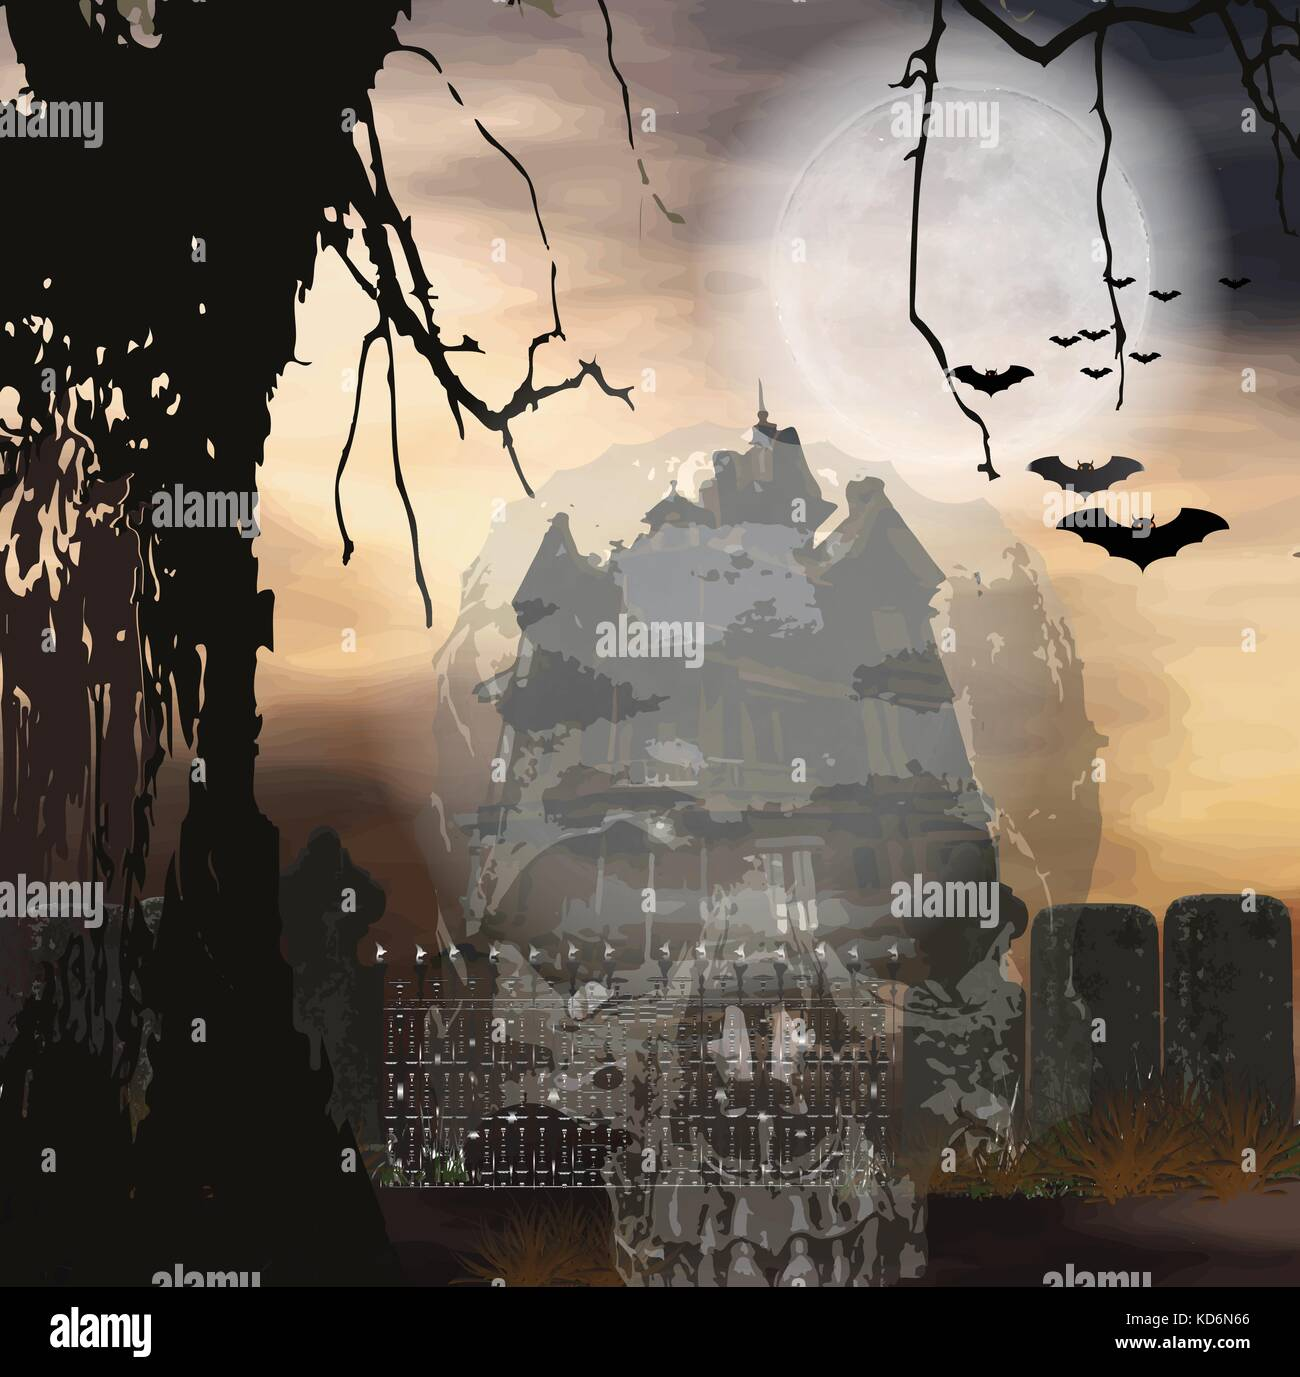 Halloween background on dark night, twilight with full moon backdrop, graveyards, Scary and Silent ,cross on weary - Stock Image